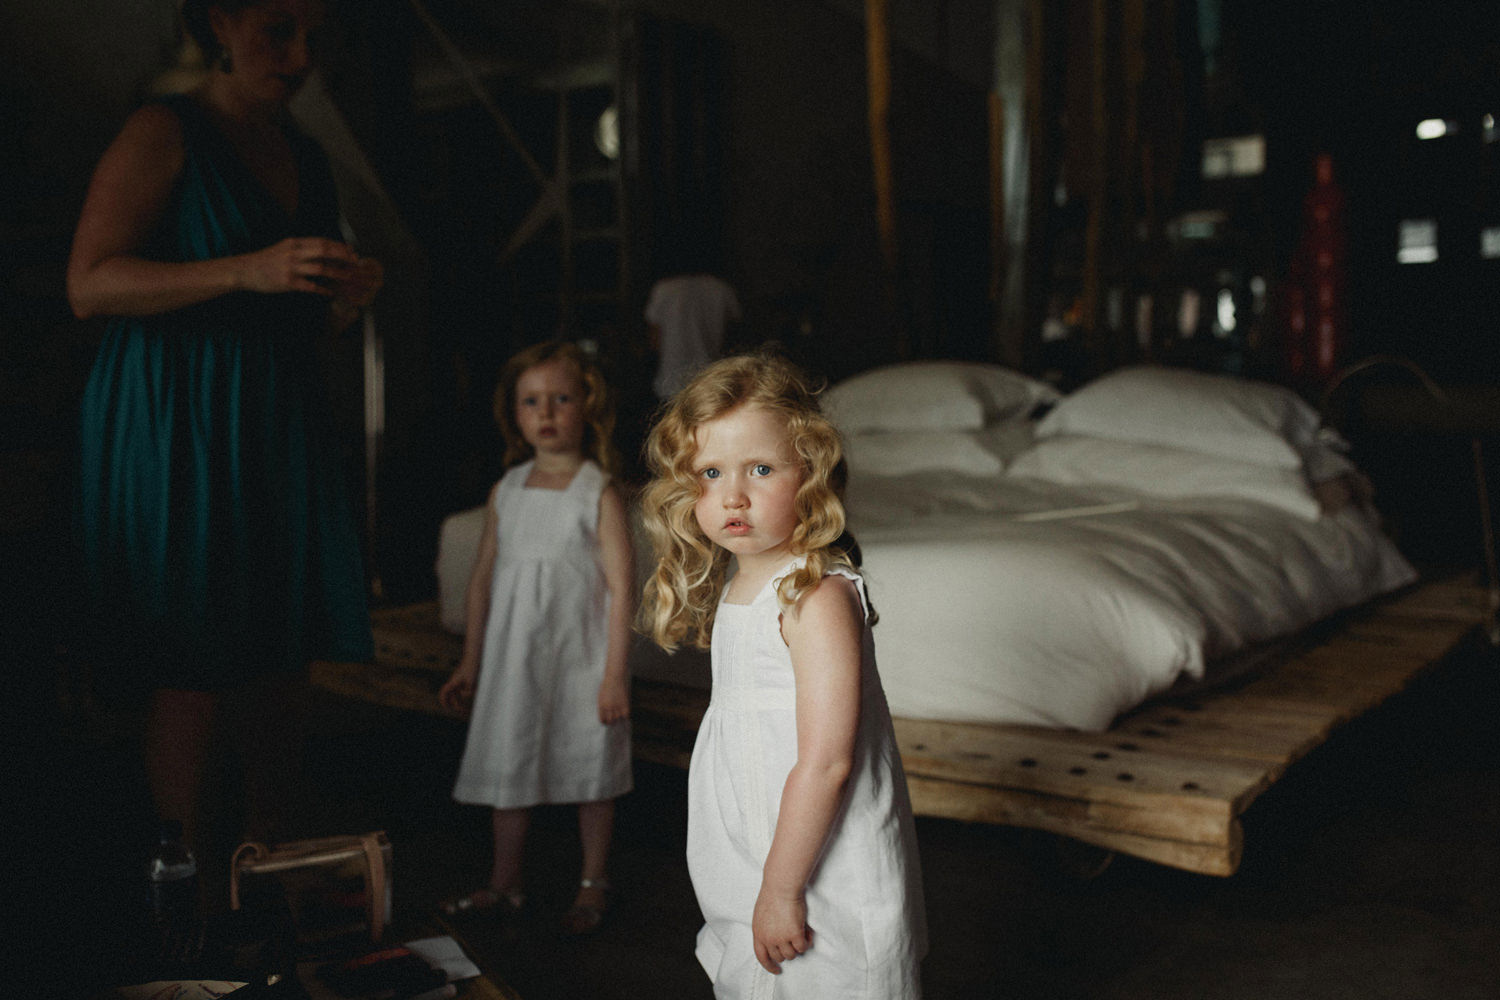 Angelic little flower girl from a wedding preparations at Areias do Seixo, Portugal